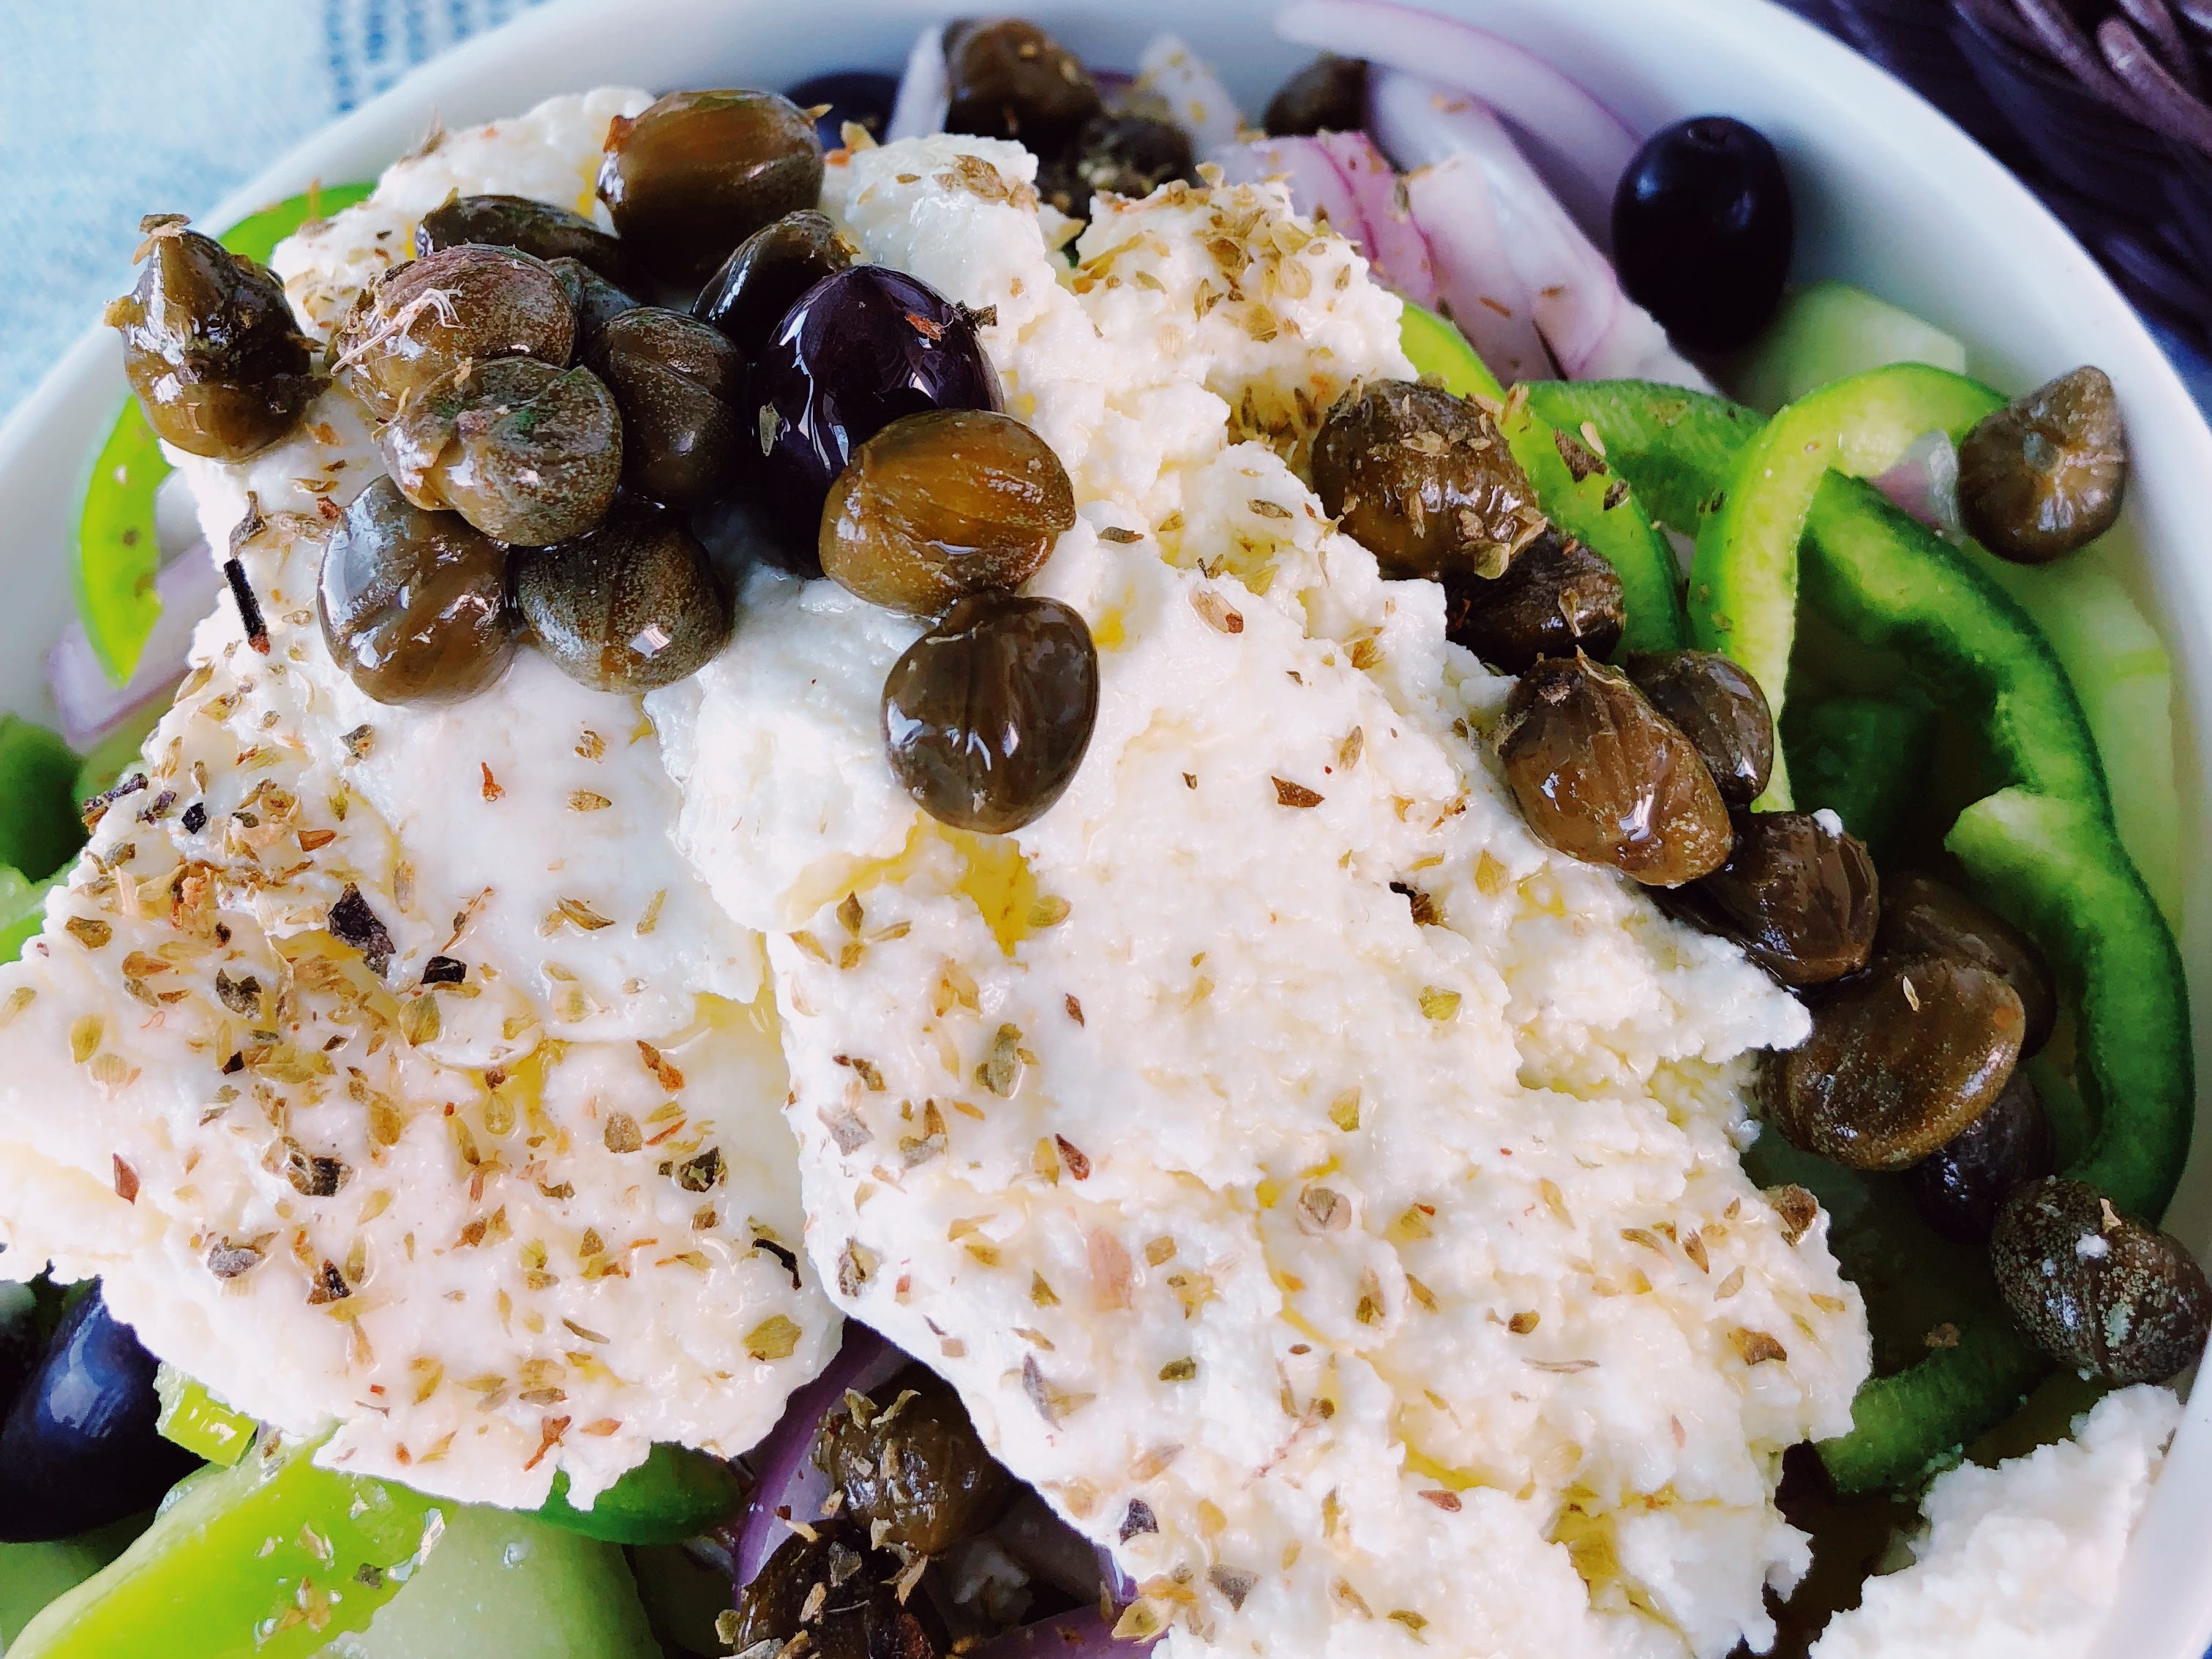 While in most of Greece the classic Greek salad includes feta cheese, on Folegandros and other islands of the Cyclades a much softer sheep or goat cheese called mizithra is used.